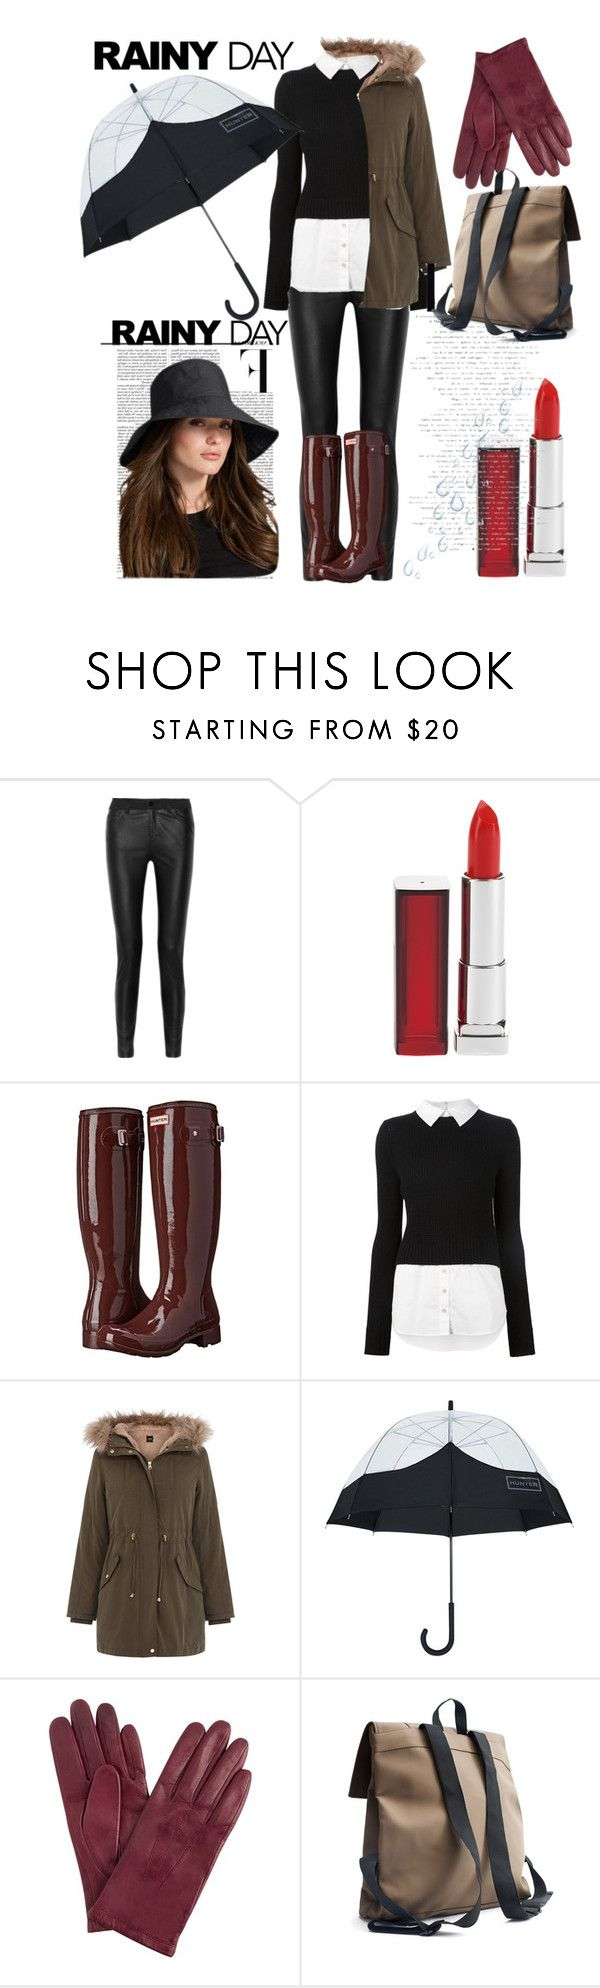 """""""yay rainy day"""" by d-cuevas ❤ liked on Polyvore featuring McQ by Alexander McQueen, Maybelline, Hunter, Veronica Beard, Oasis, Nicki Minaj, John Lewis, Rains, rainyday and rainboots"""